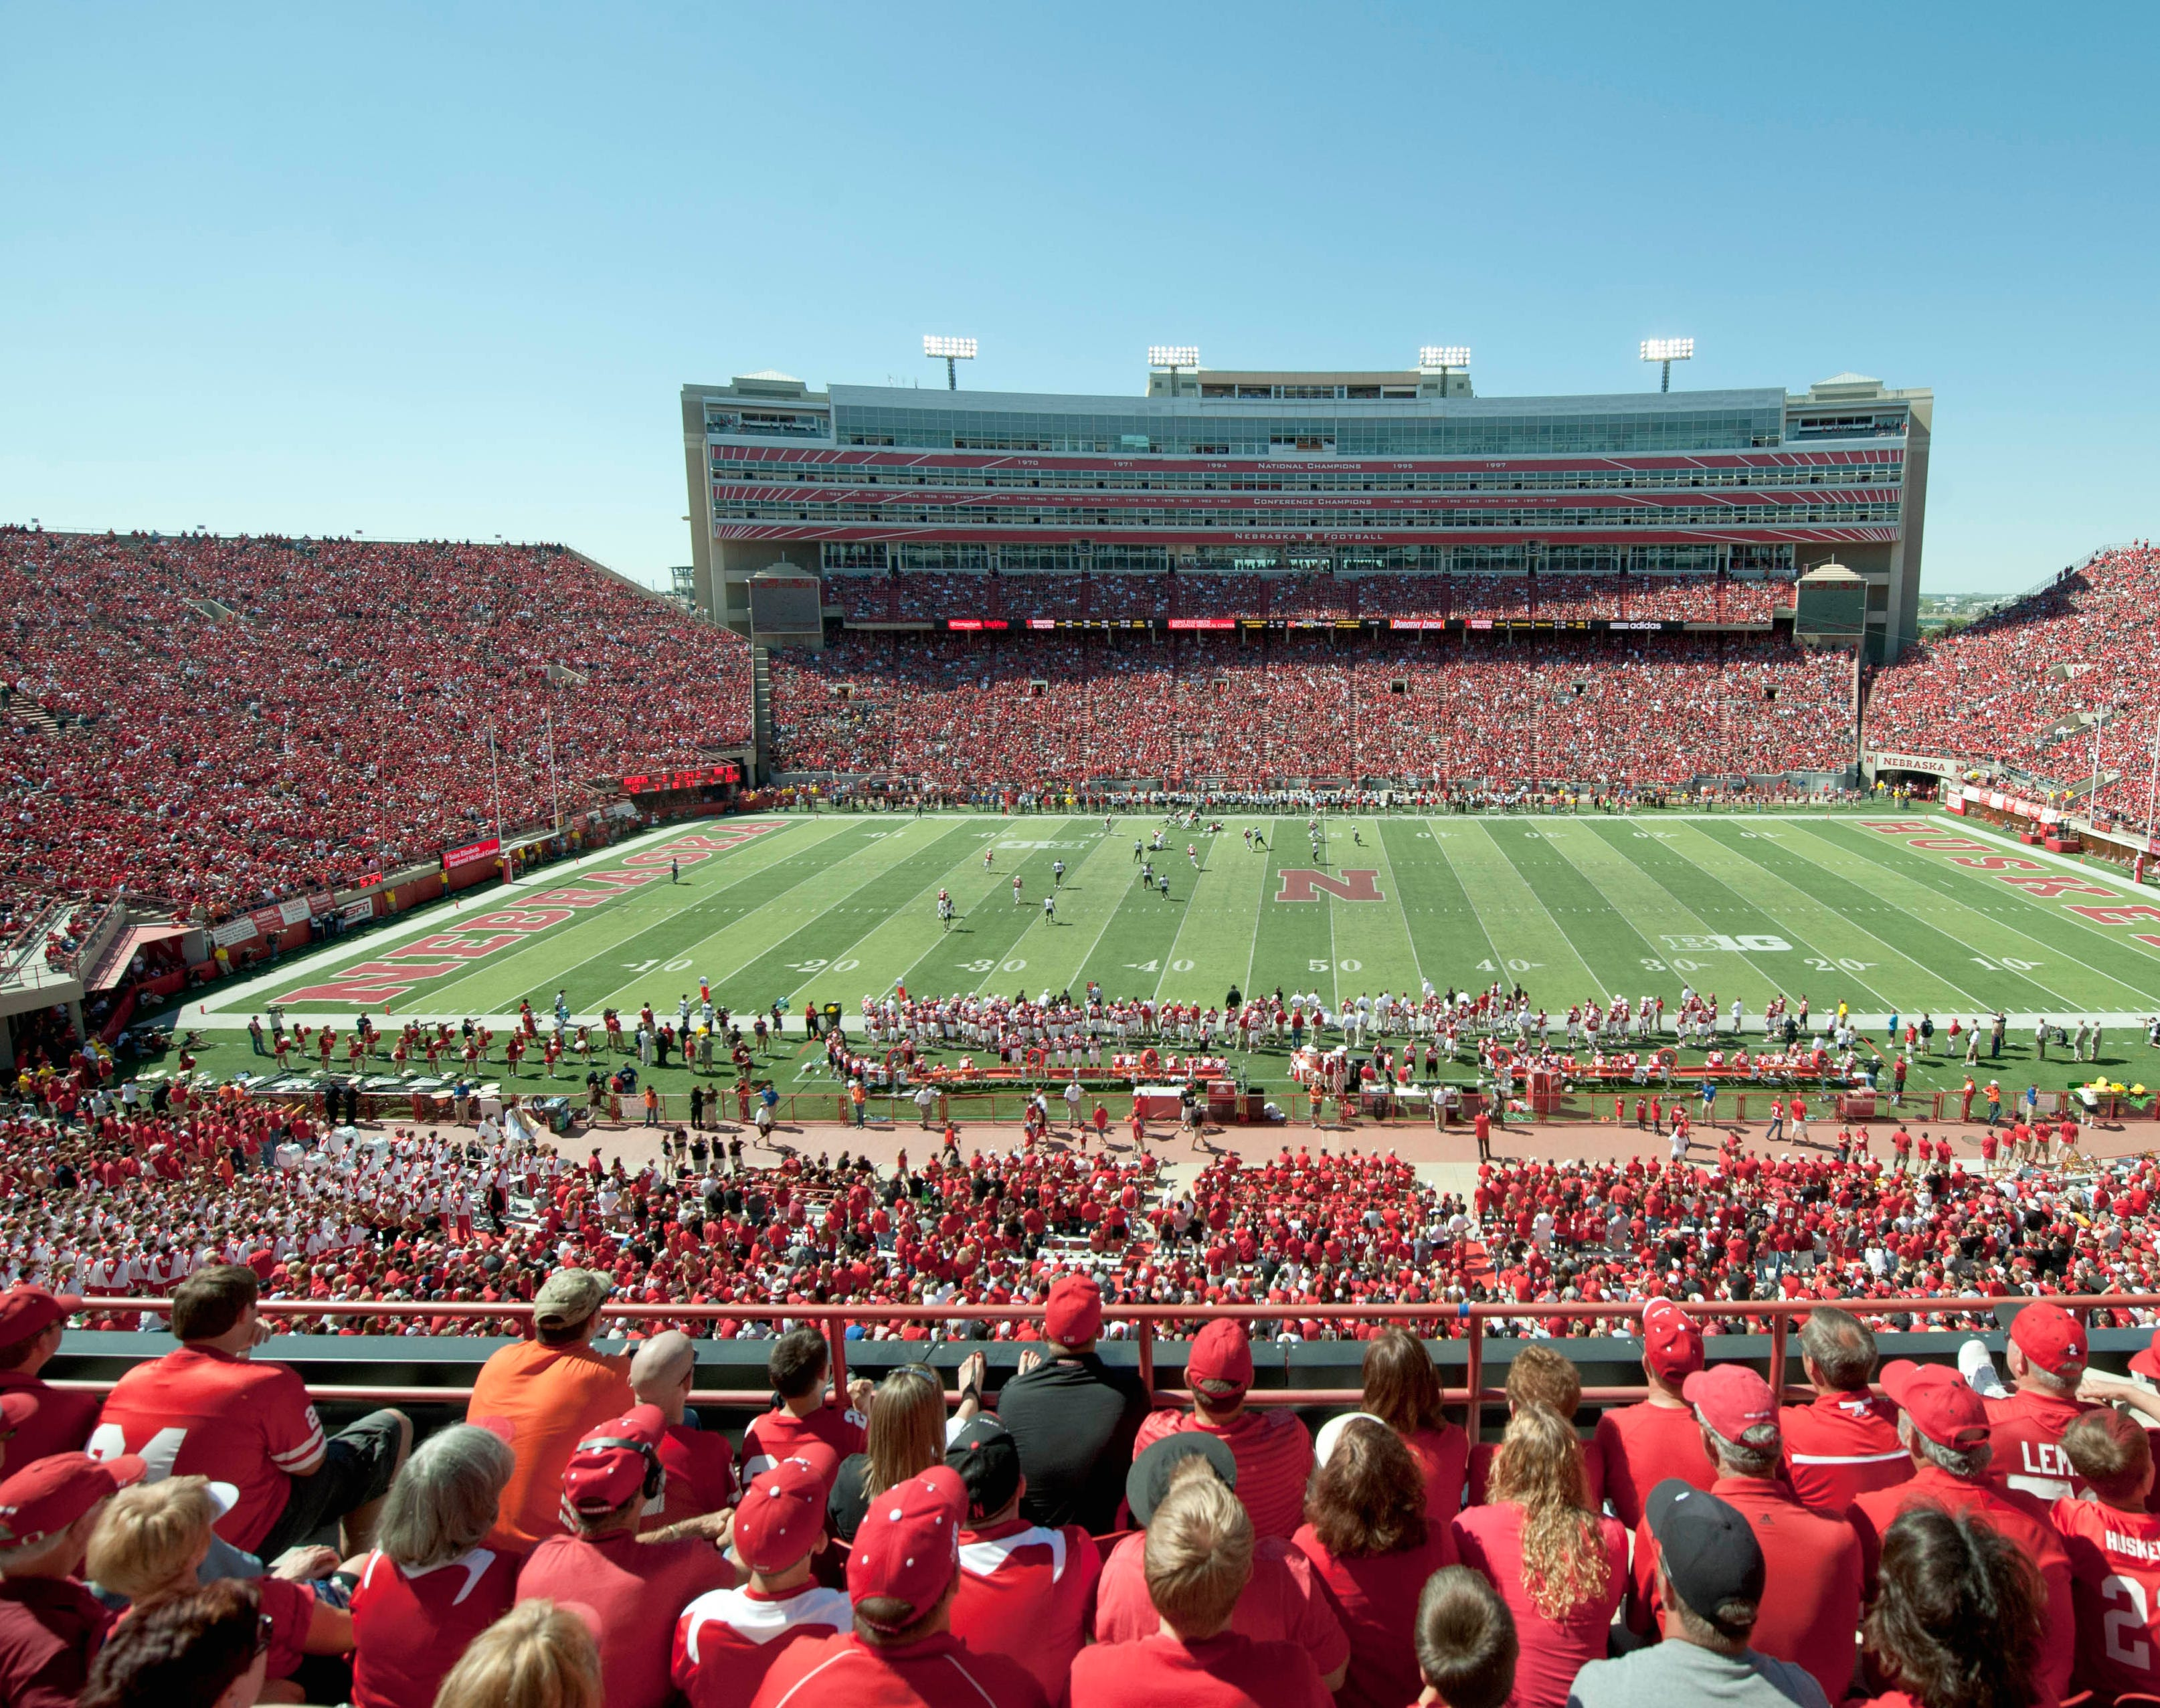 Nebraska has sold out every game at Memorial Stadium since 1962. (AP Photo/Dave Weaver, File)